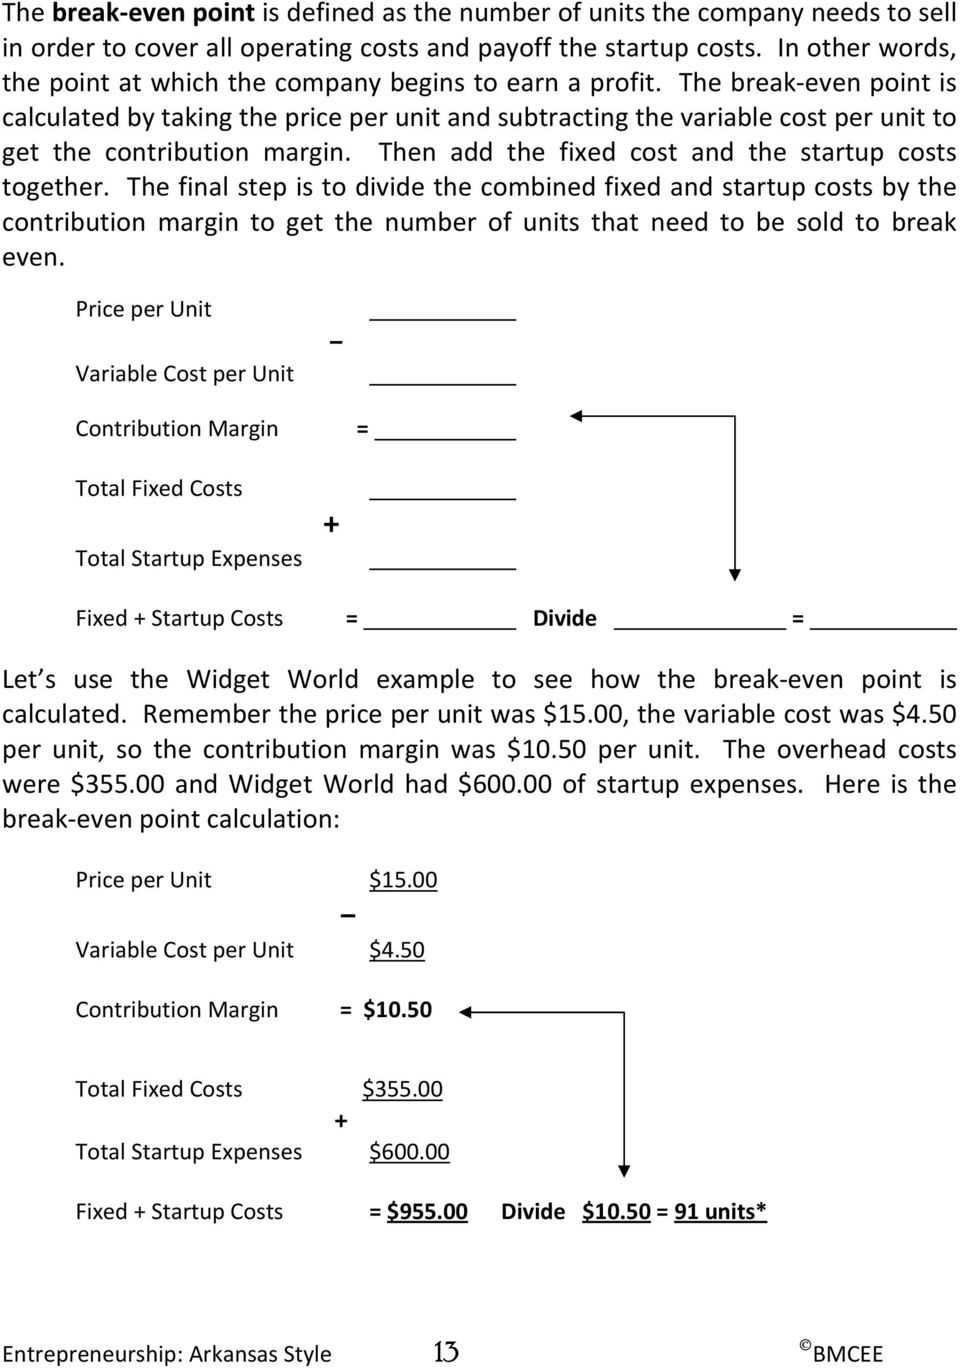 The break even point is calculated by taking the price per unit and subtracting the variable cost per unit to get the contribution margin. Then add the fixed cost and the startup costs together.